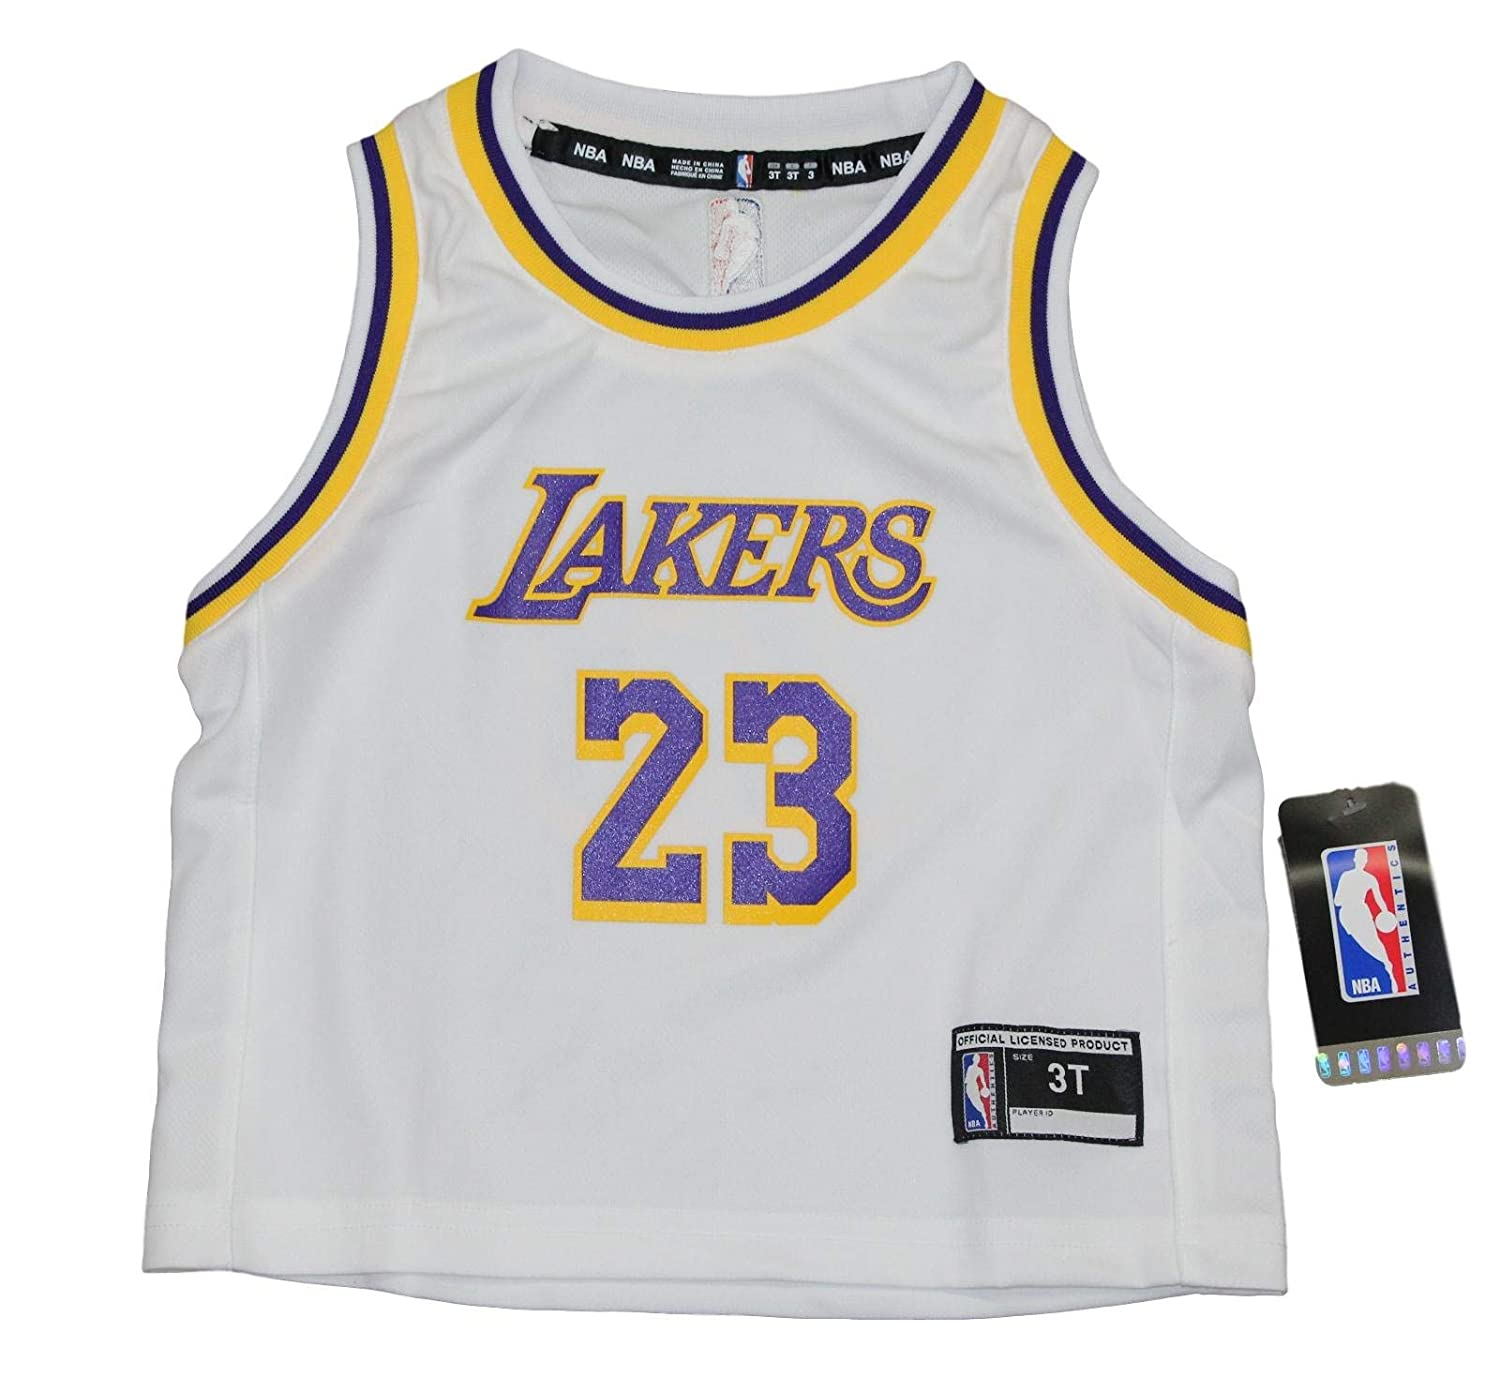 d1099350328 Amazon.com   Outerstuff Lebron James Los Angeles Lakers Toddler NBA Replica  Jersey - White   Sports   Outdoors